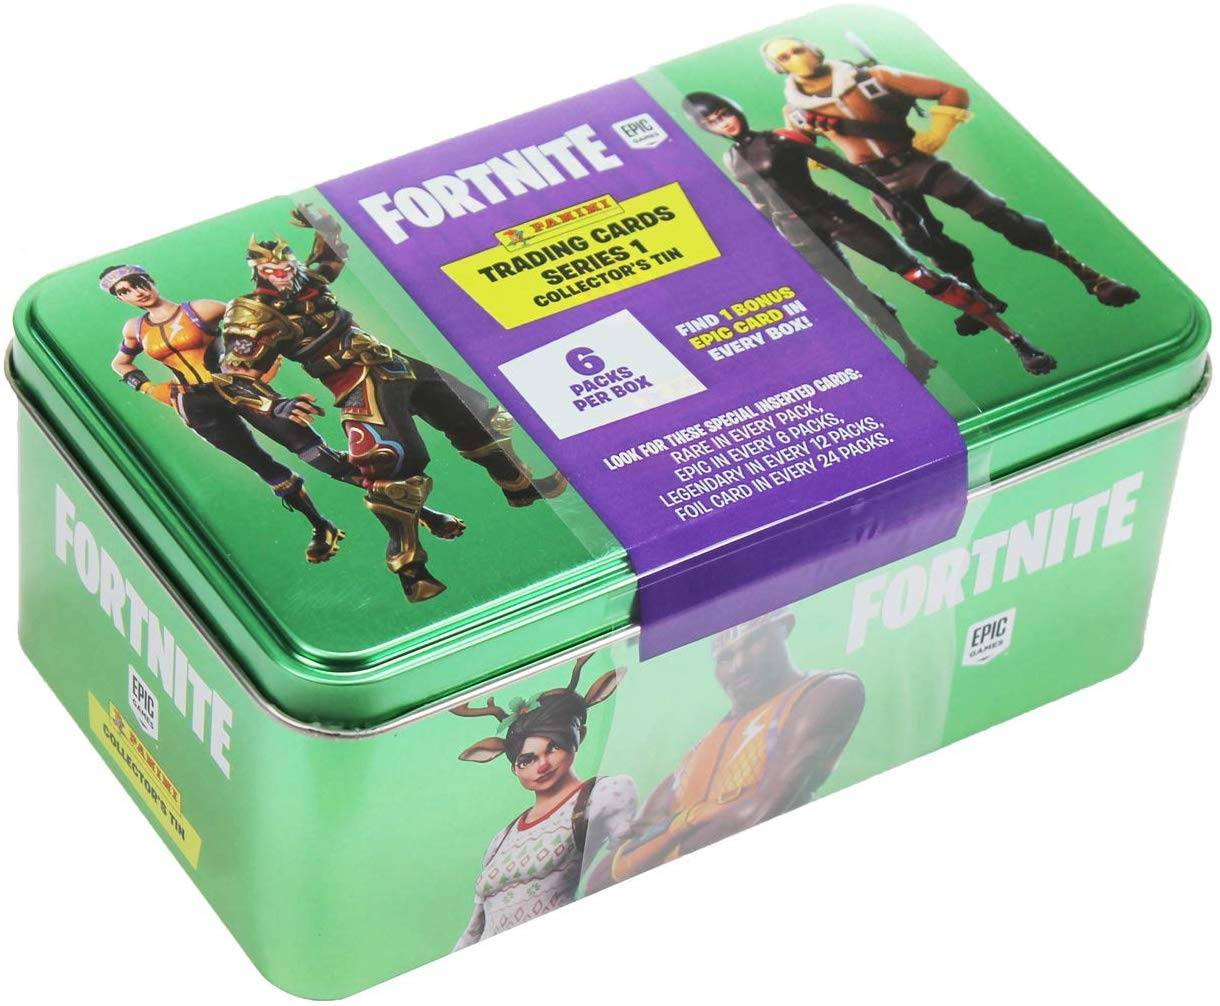 Gadget Fortnite